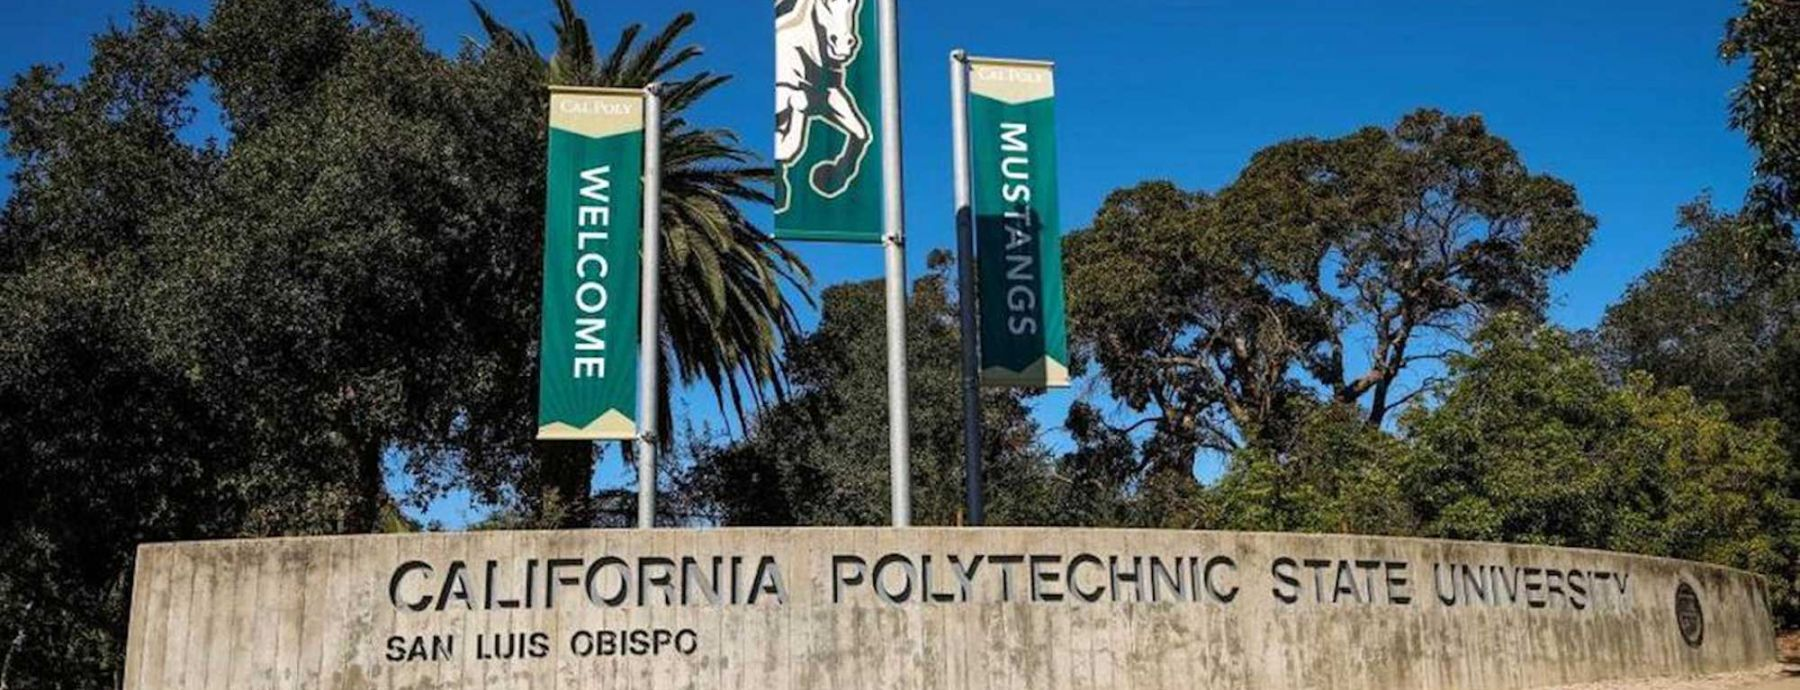 Cal Poly Banner